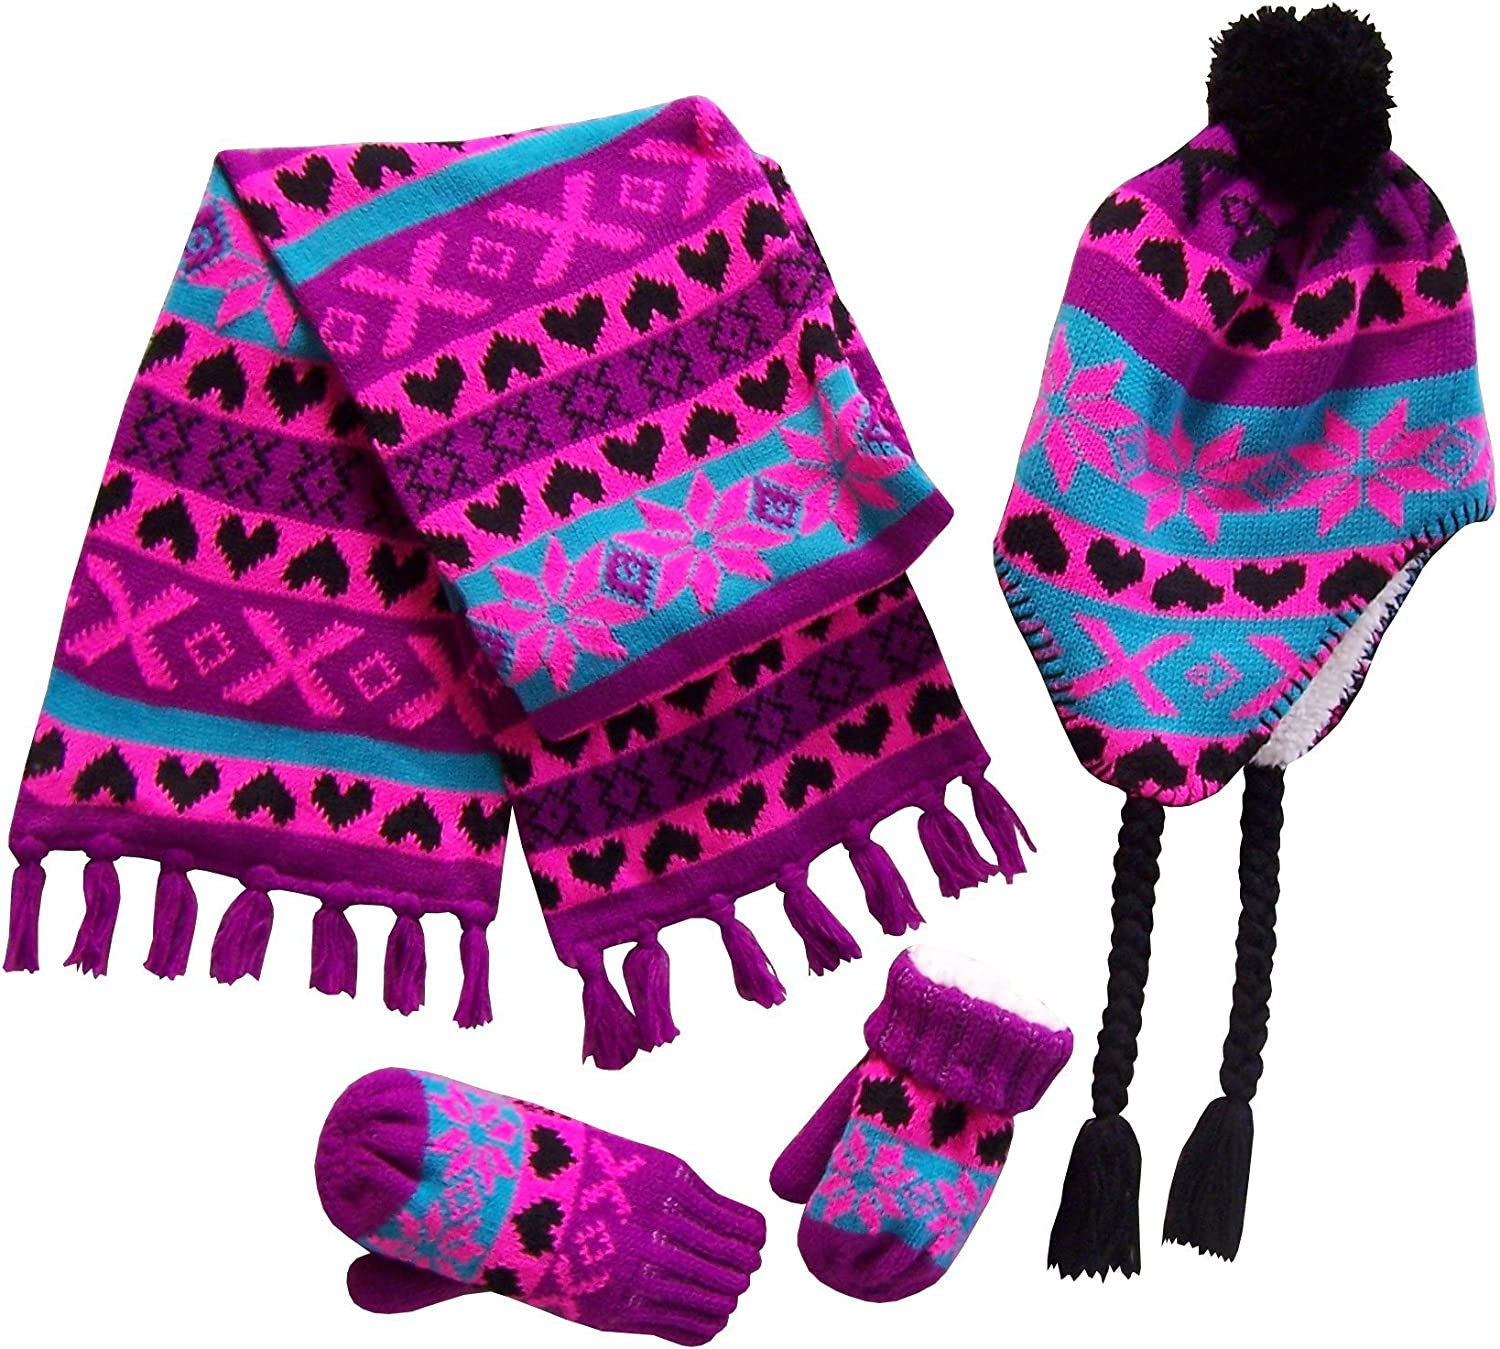 NIce Caps Little Girls and Infants Sherpa Lined Knitted 3 PC Set with Designs